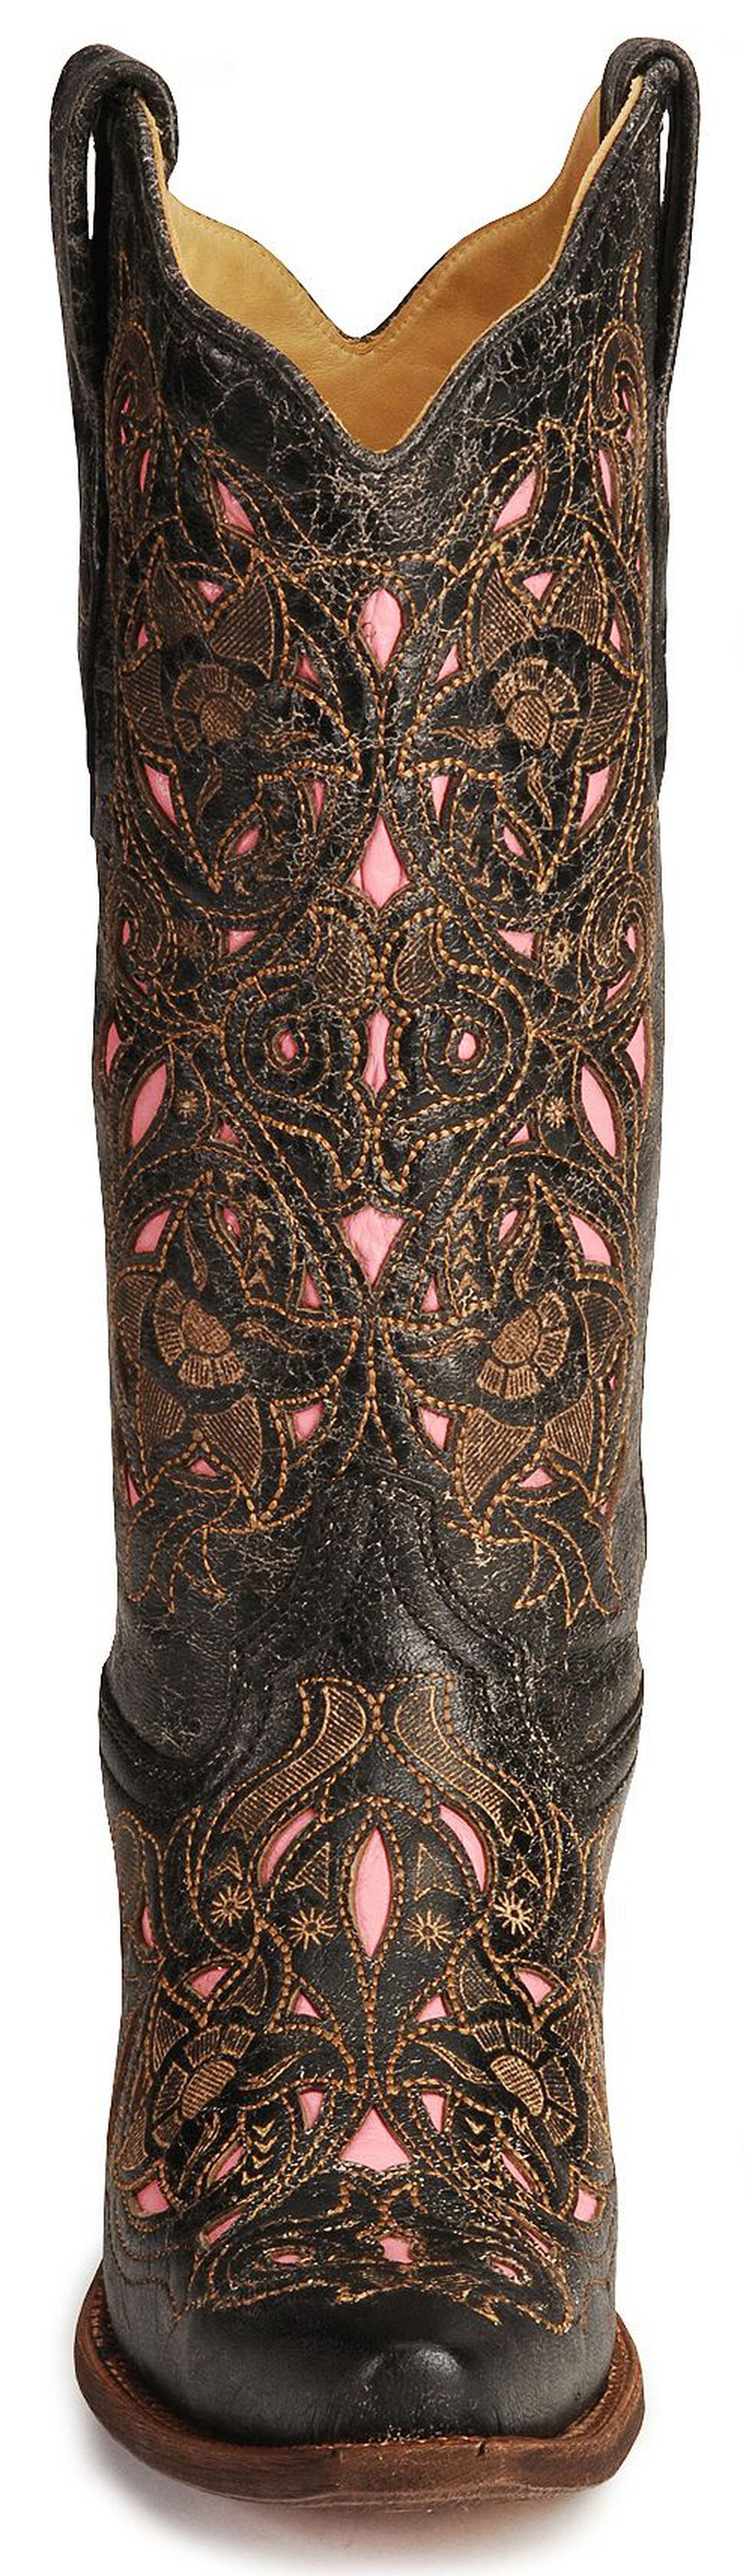 Corral Women's Laser Pink Inlay Cowboy Boots - Snip Toe, , hi-res